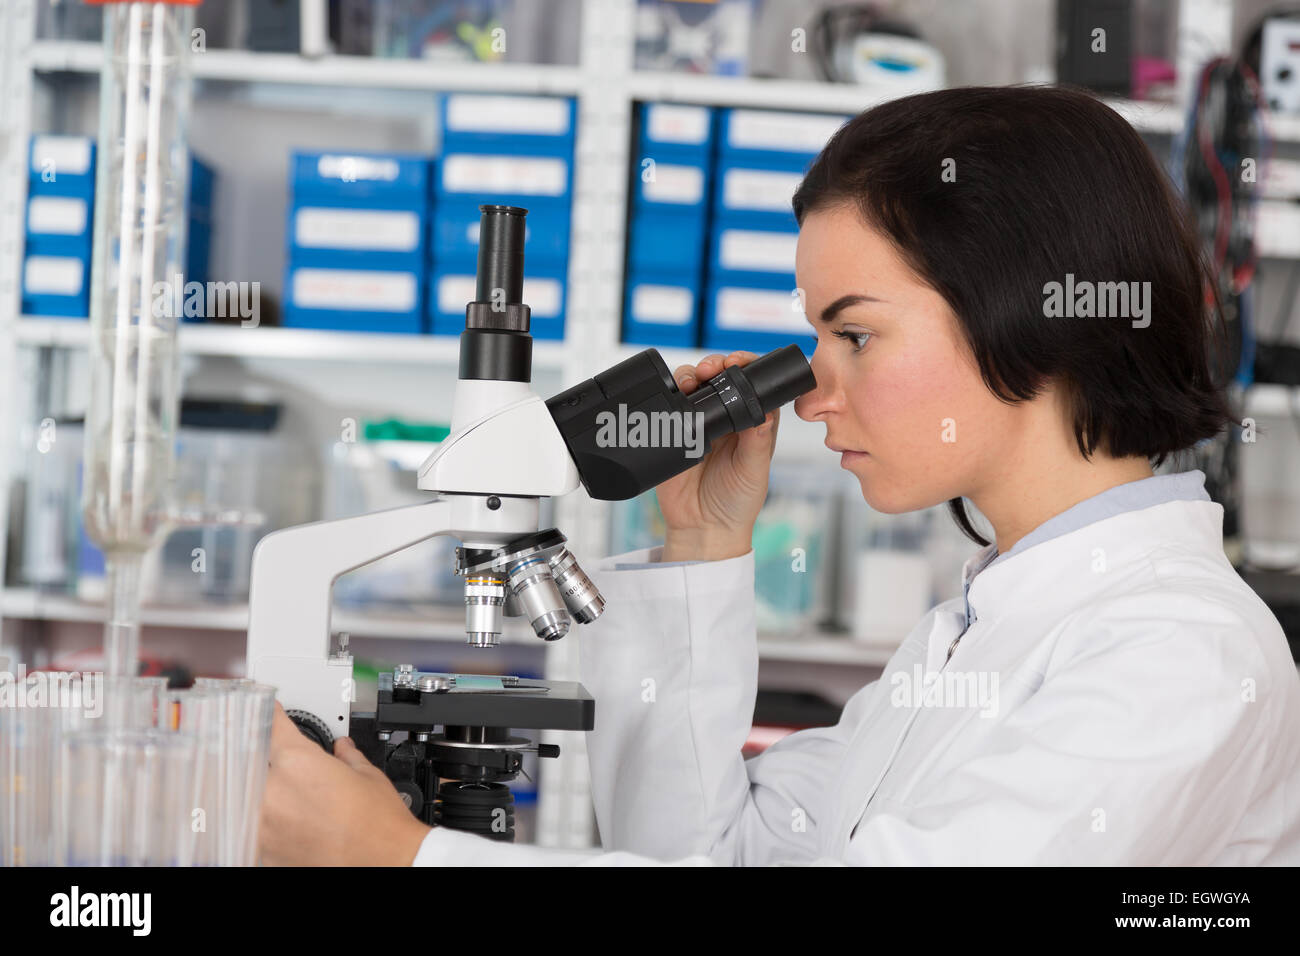 Scientist young woman using a microscope in a science laboratory - Stock Image